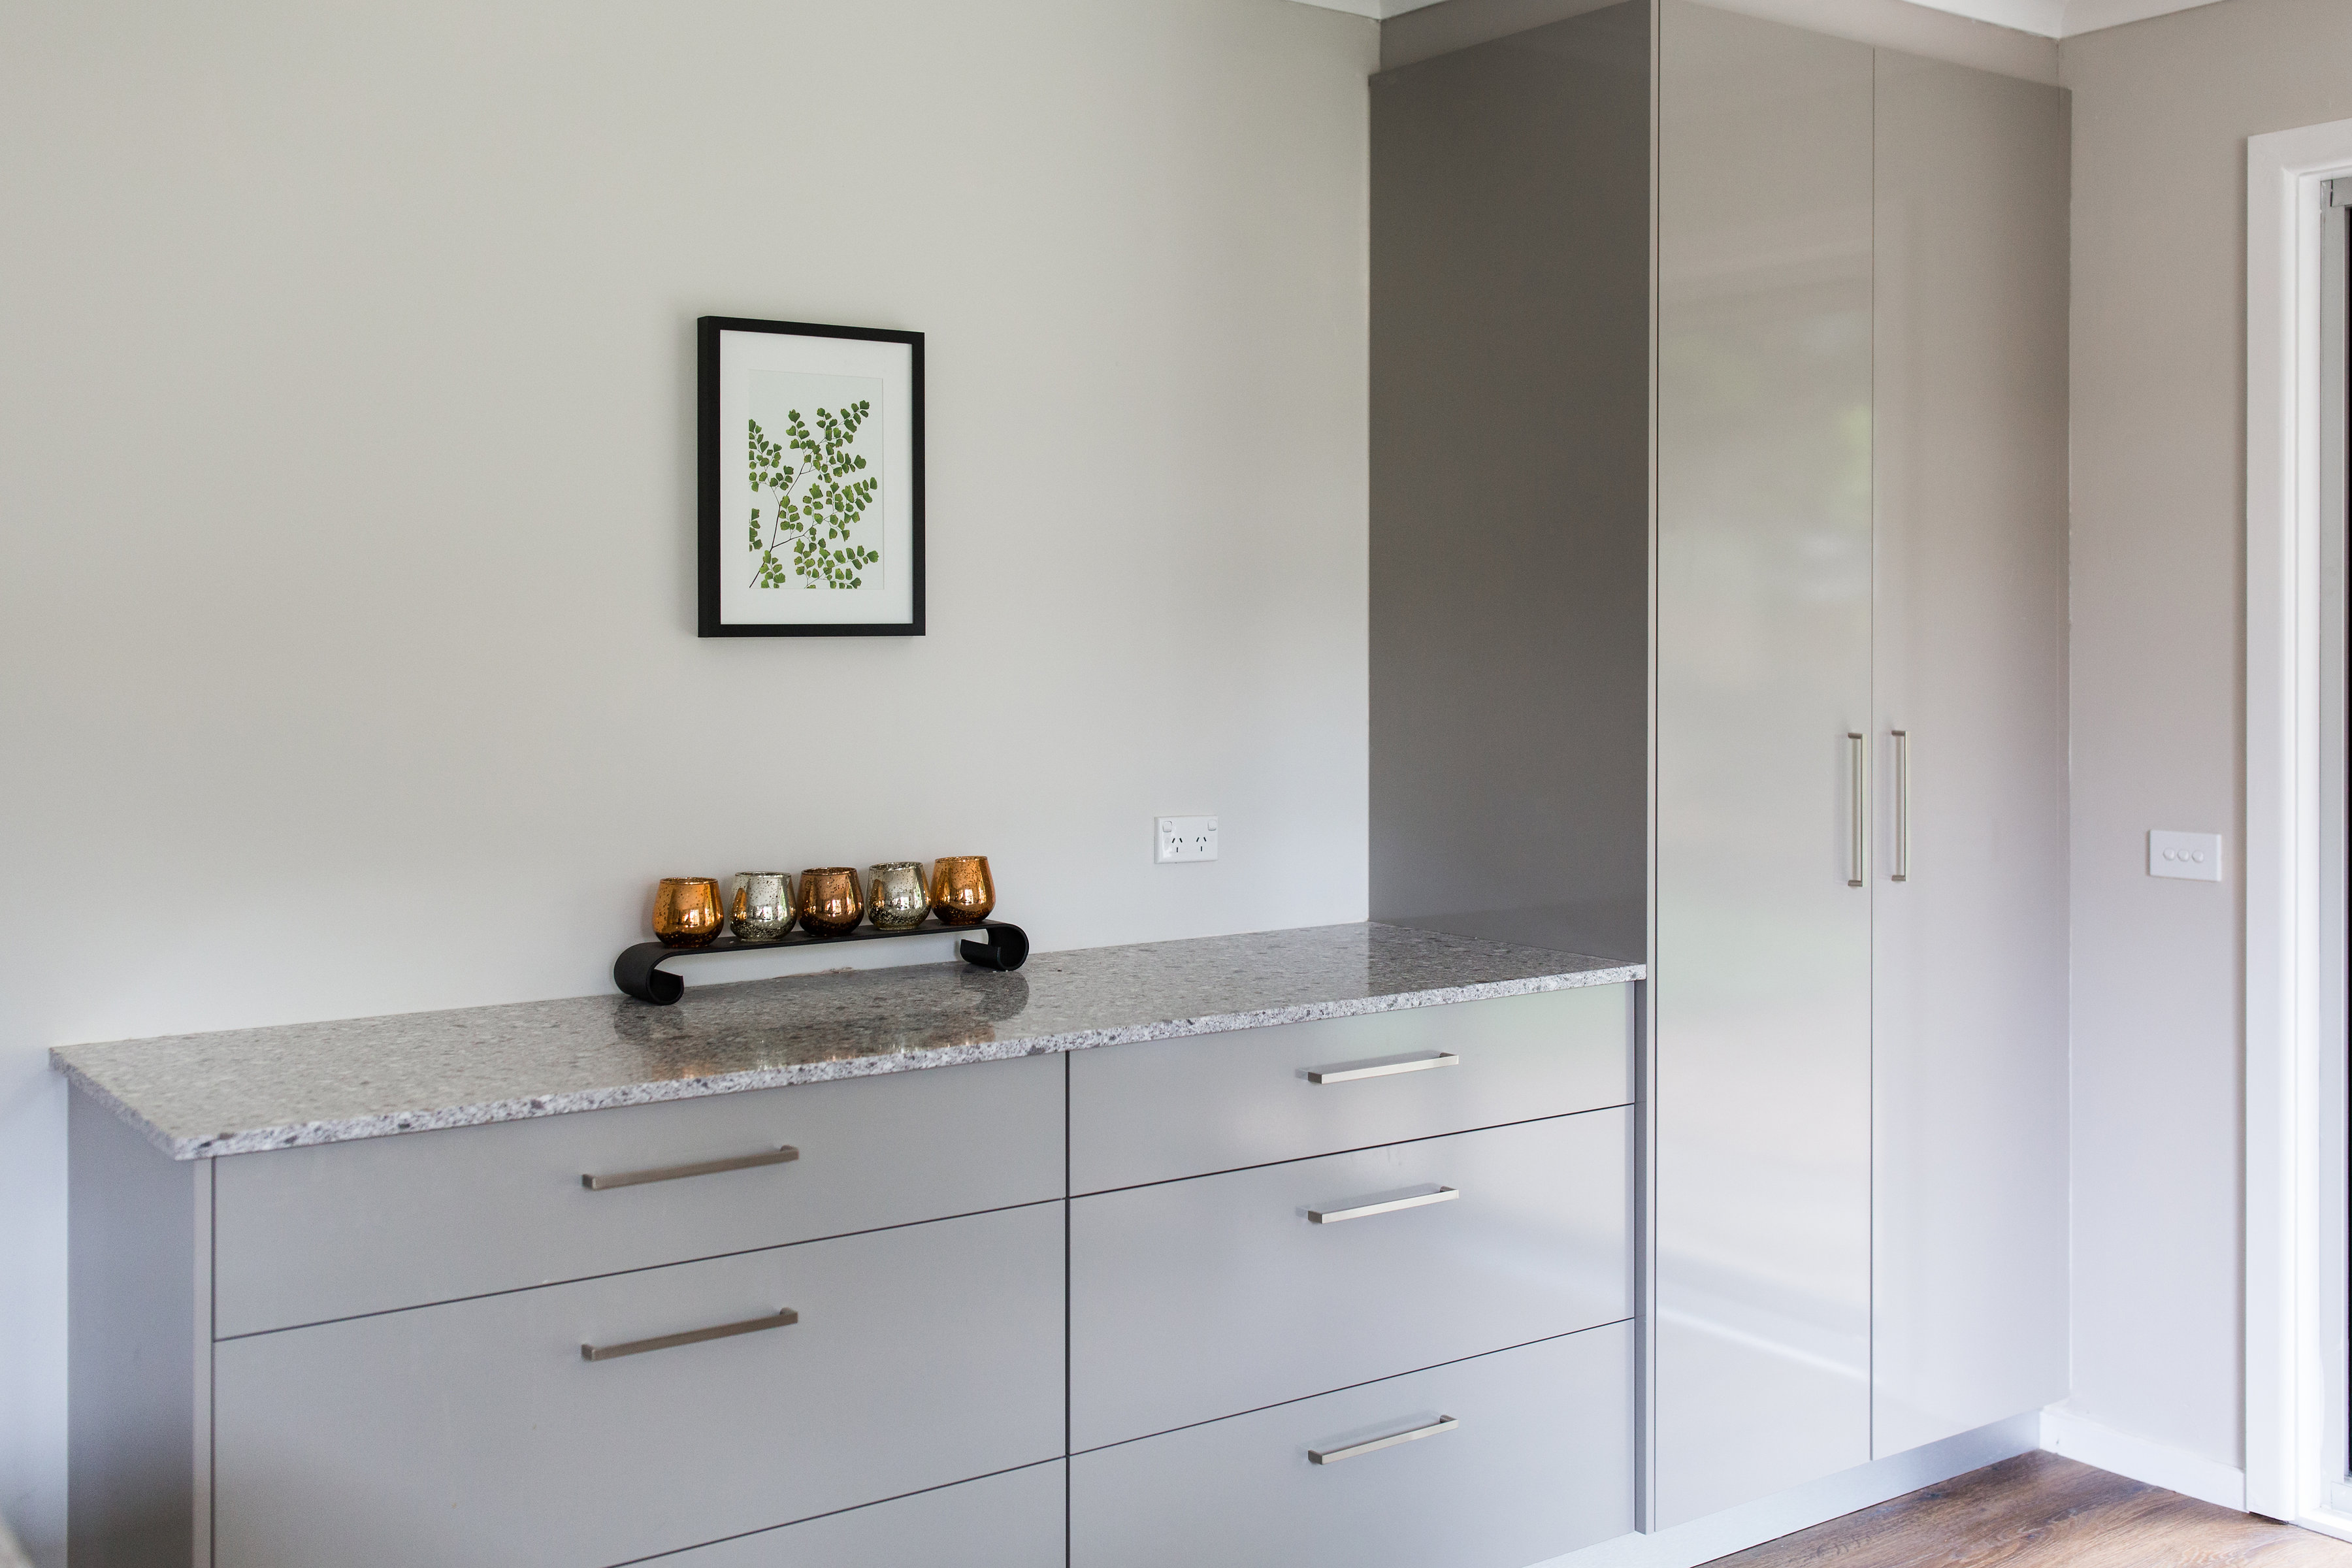 Cabinetry in Polytec Stone Grey